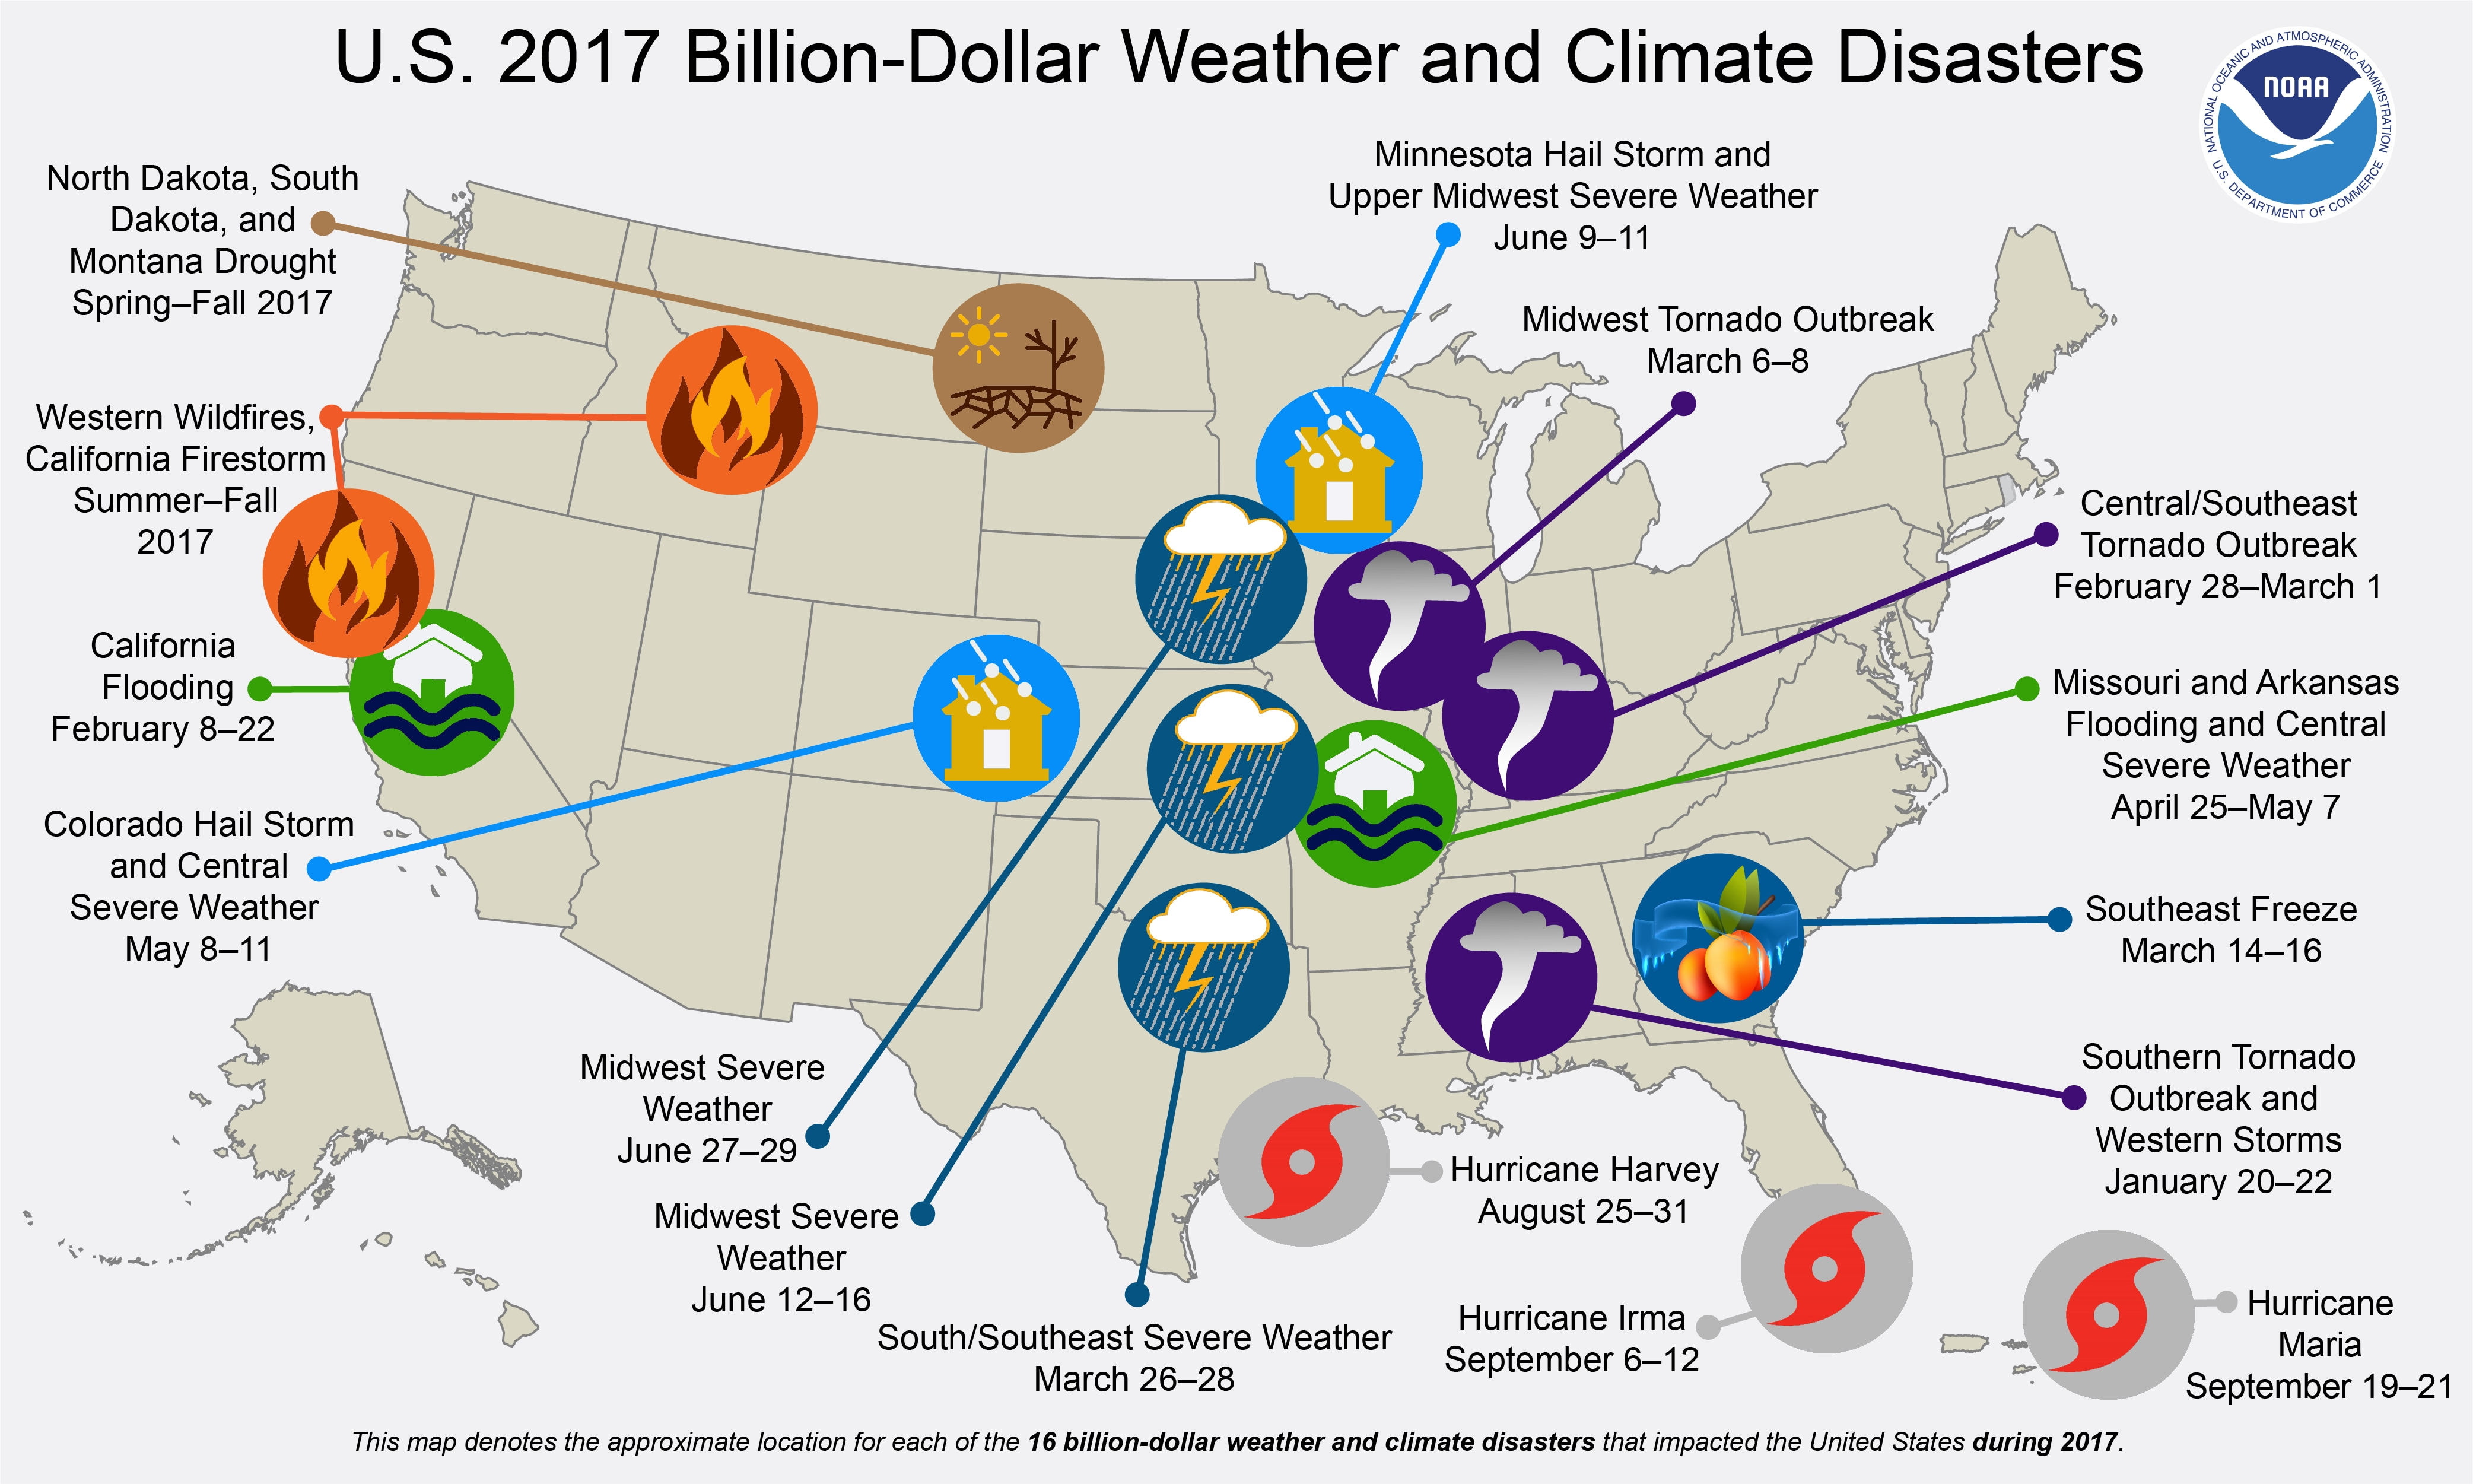 hurricane damage, storm damage, Hurricane Harvey, Hurricane Maria, Hurricane Irma, Puerto Rico hurricane disaster, National Oceanic and Atmospheric Administration reported, climate change costs